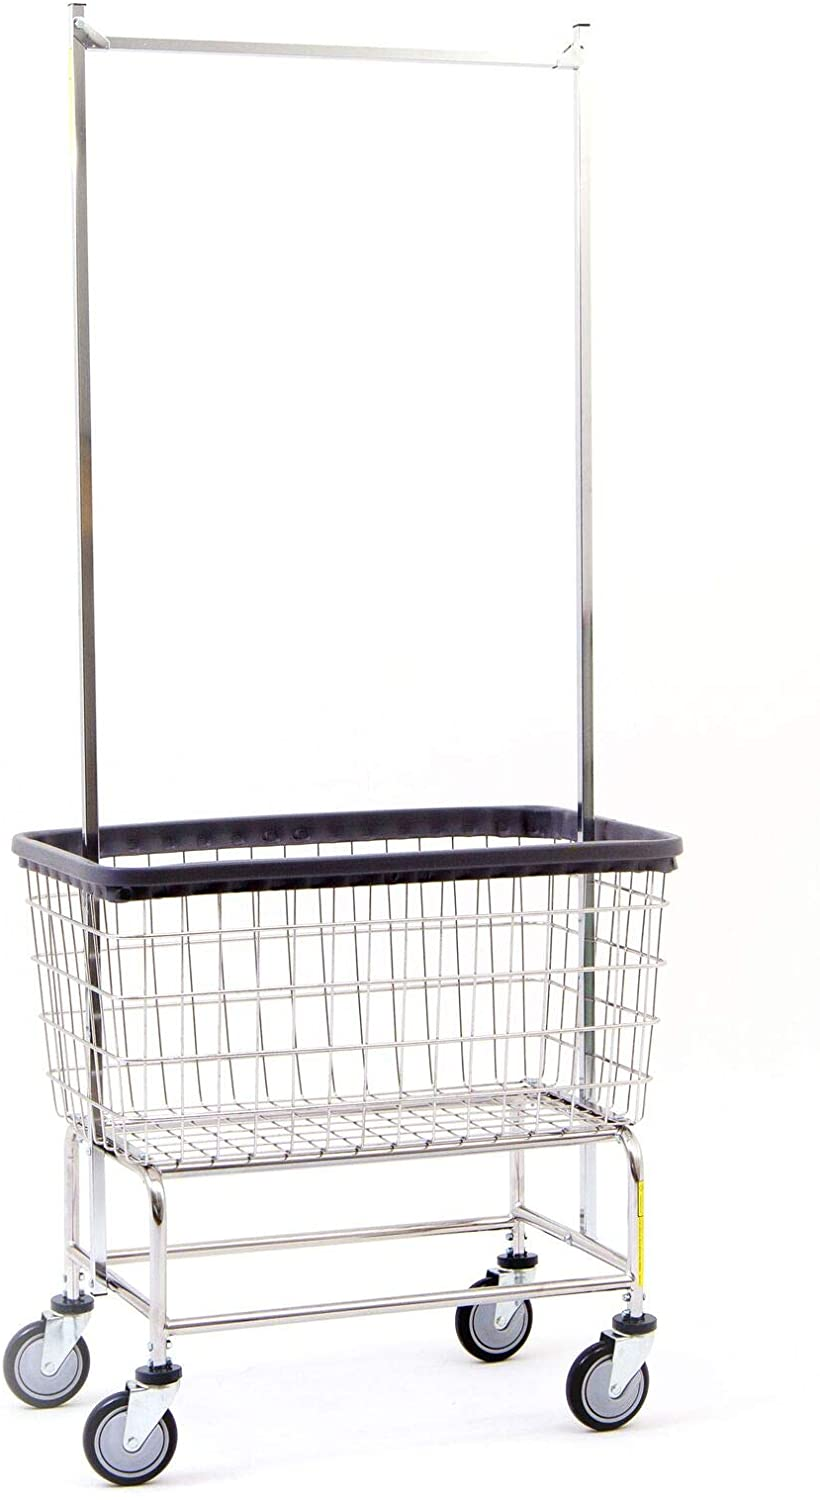 R&B Wire 200F56 Large Wire Laundry Cart with Double Pole Rack, 4.5 Bushel, Chrome